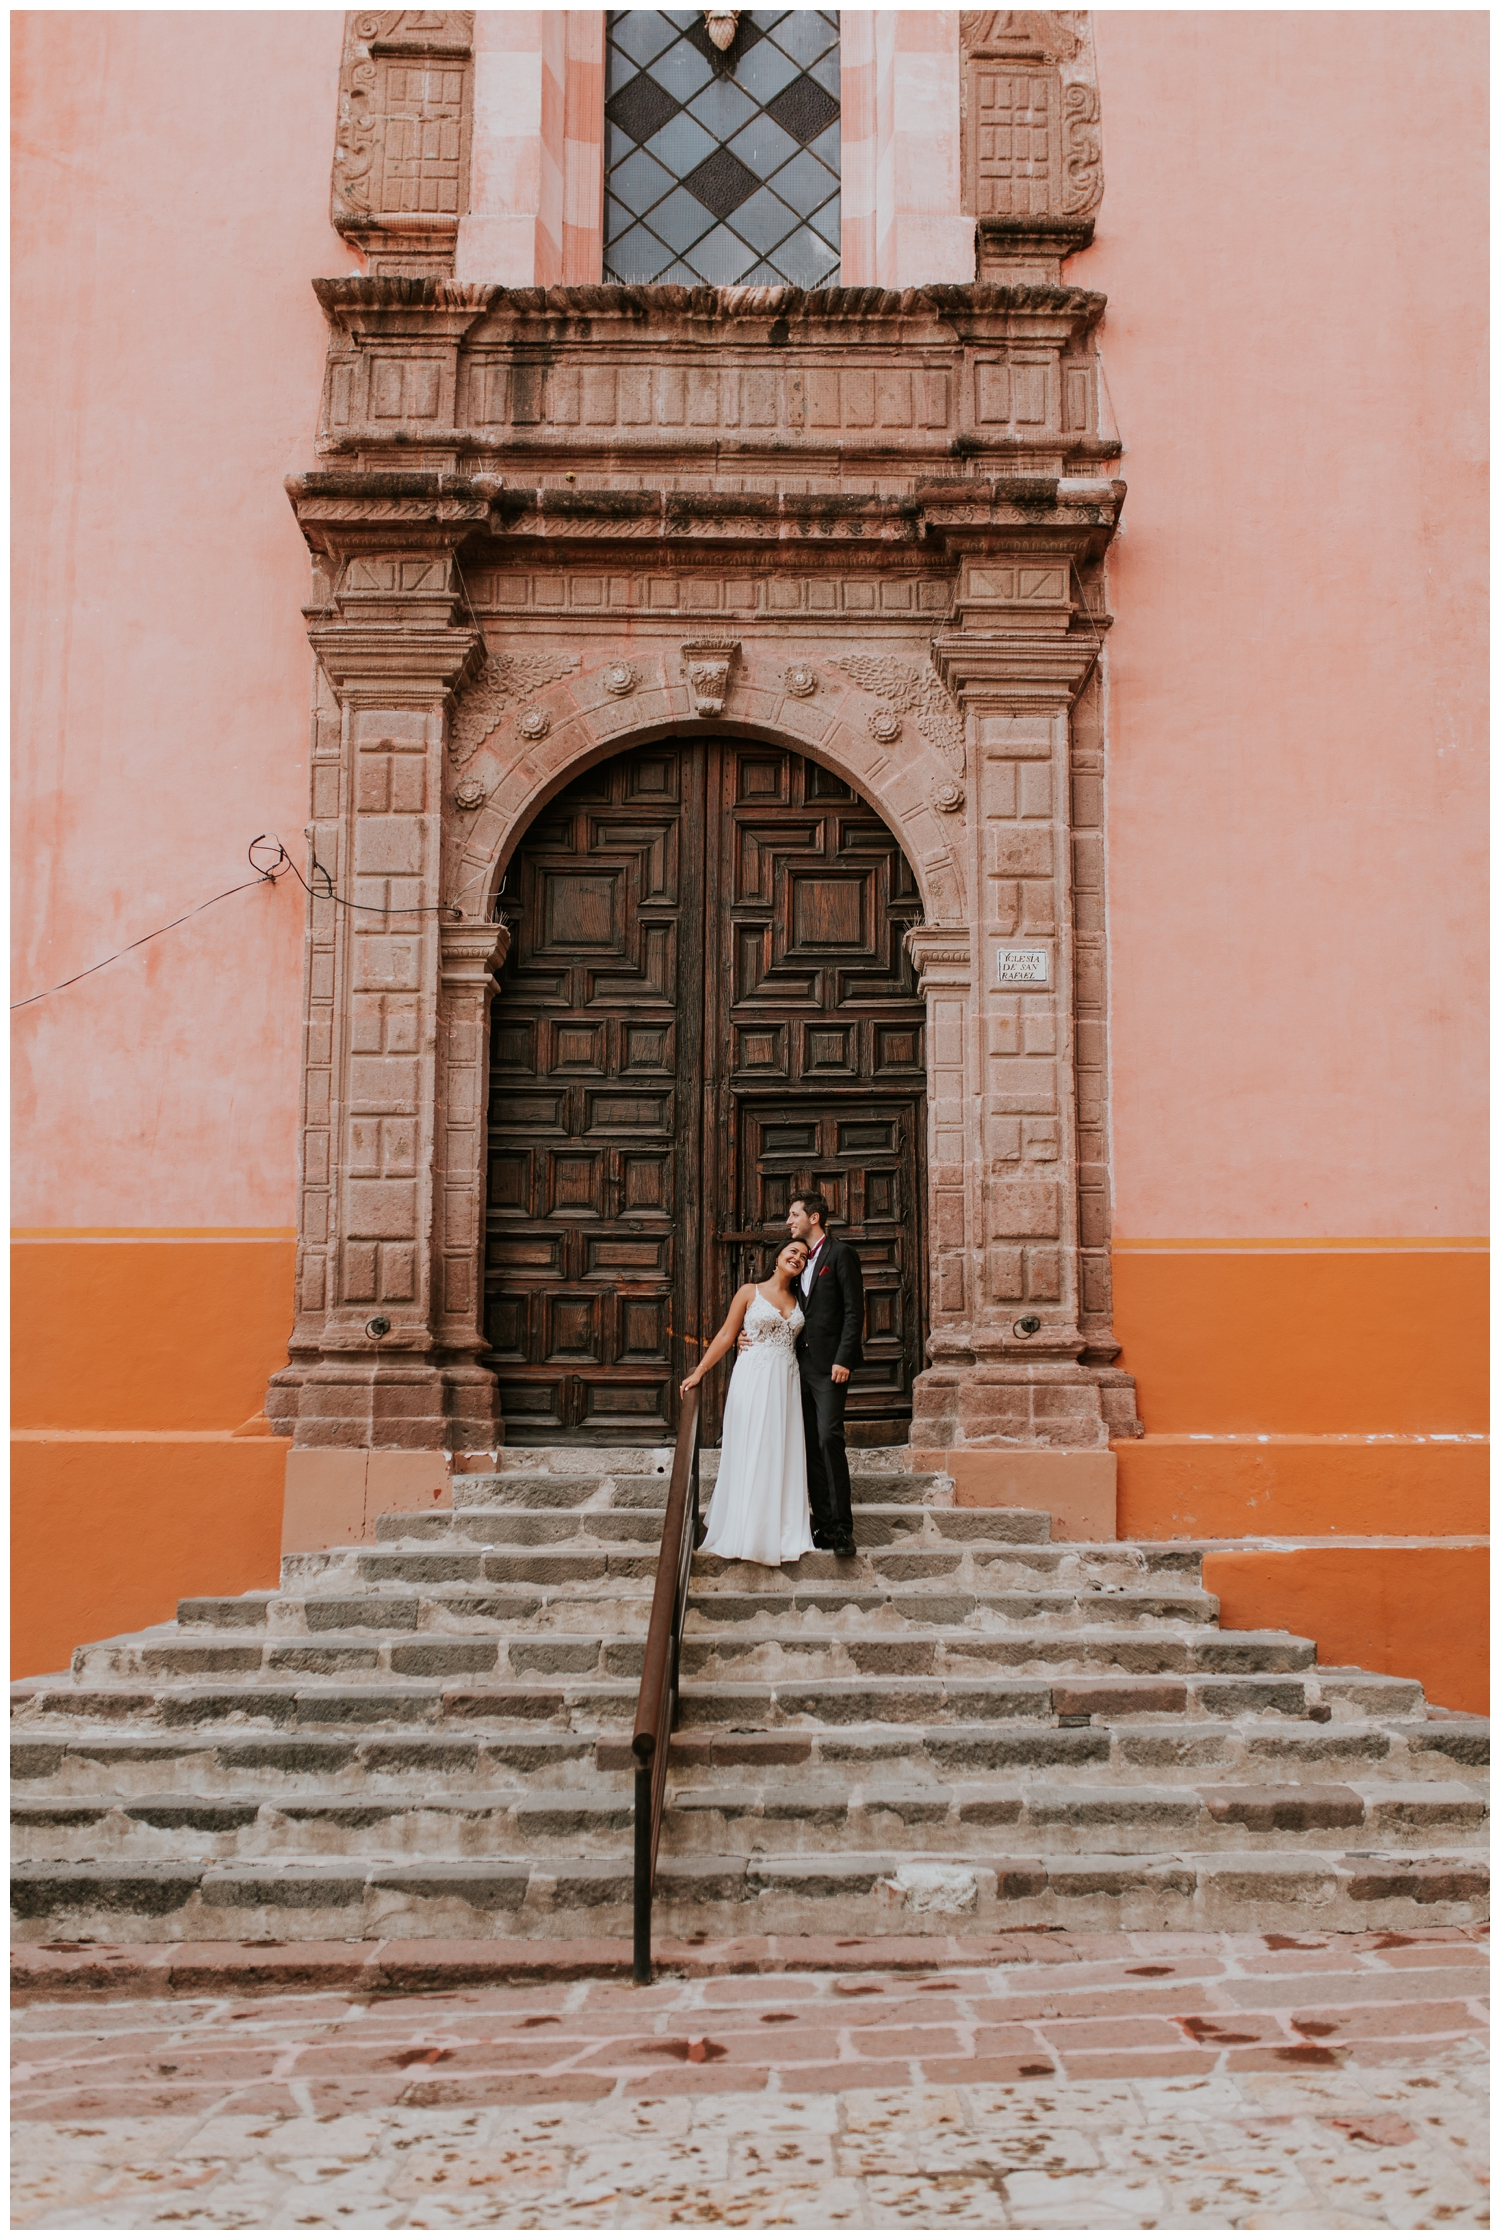 Shane+Sofia, San Miguel de Allende Wedding, Mexico Wedding, Contista Productions Wedding Photography_0226.jpg